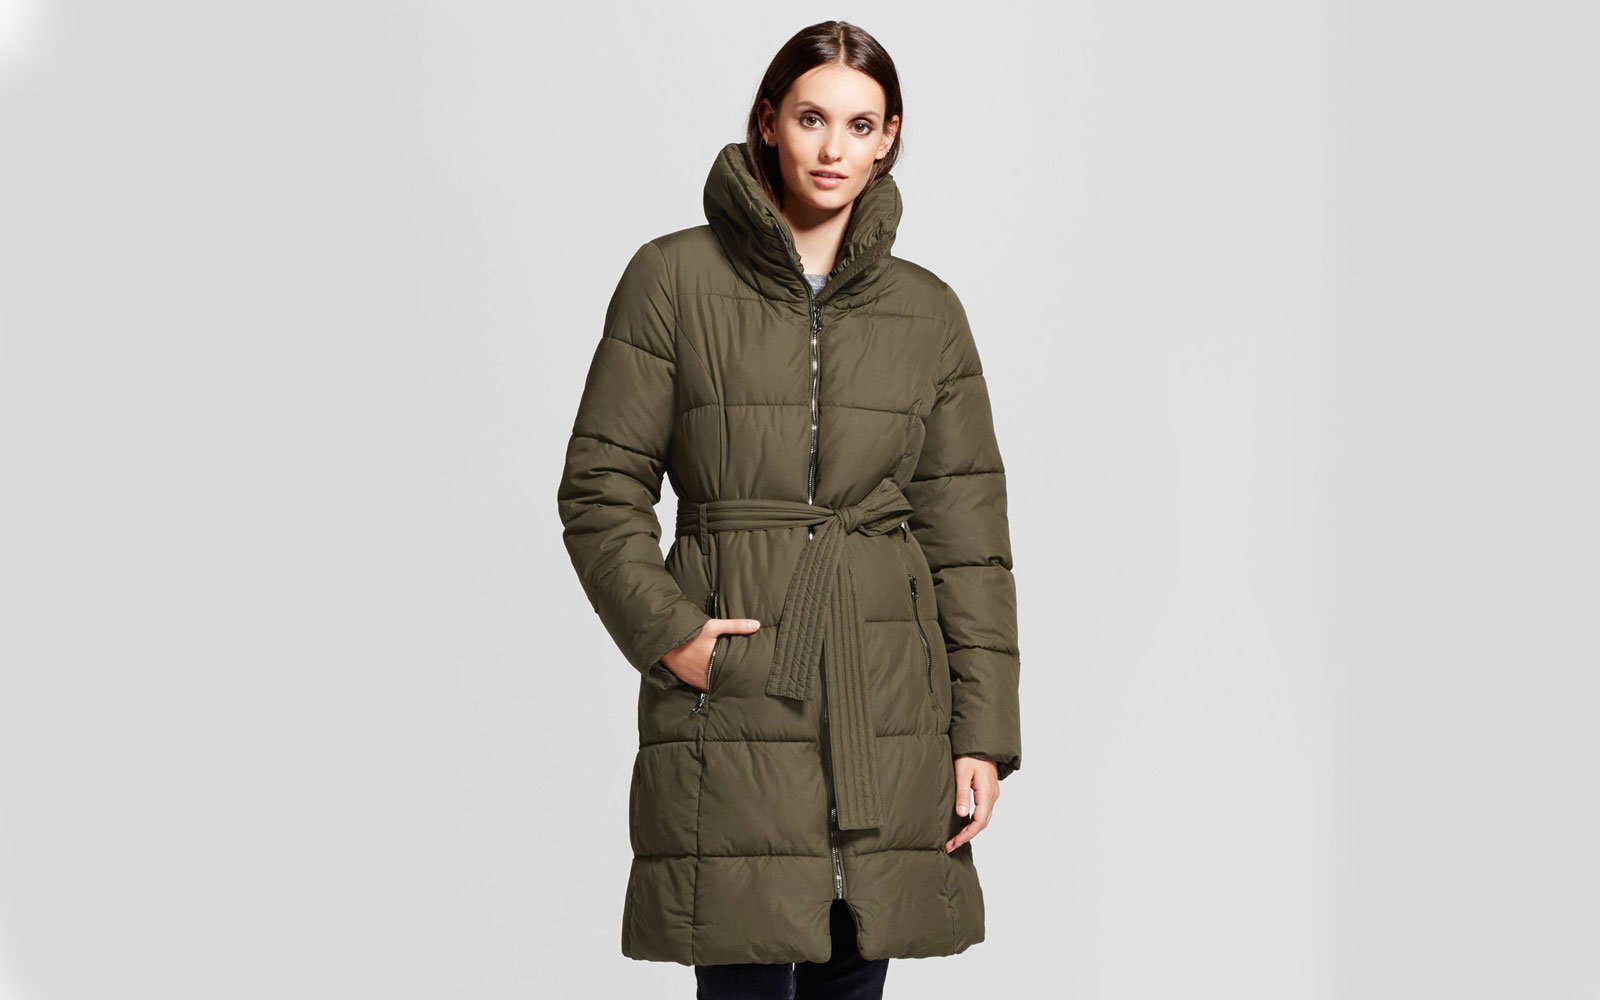 8f3513c2e01 Mossimo Women s Puffer Coat With Pillow Collar. Target c9 by Champion ...